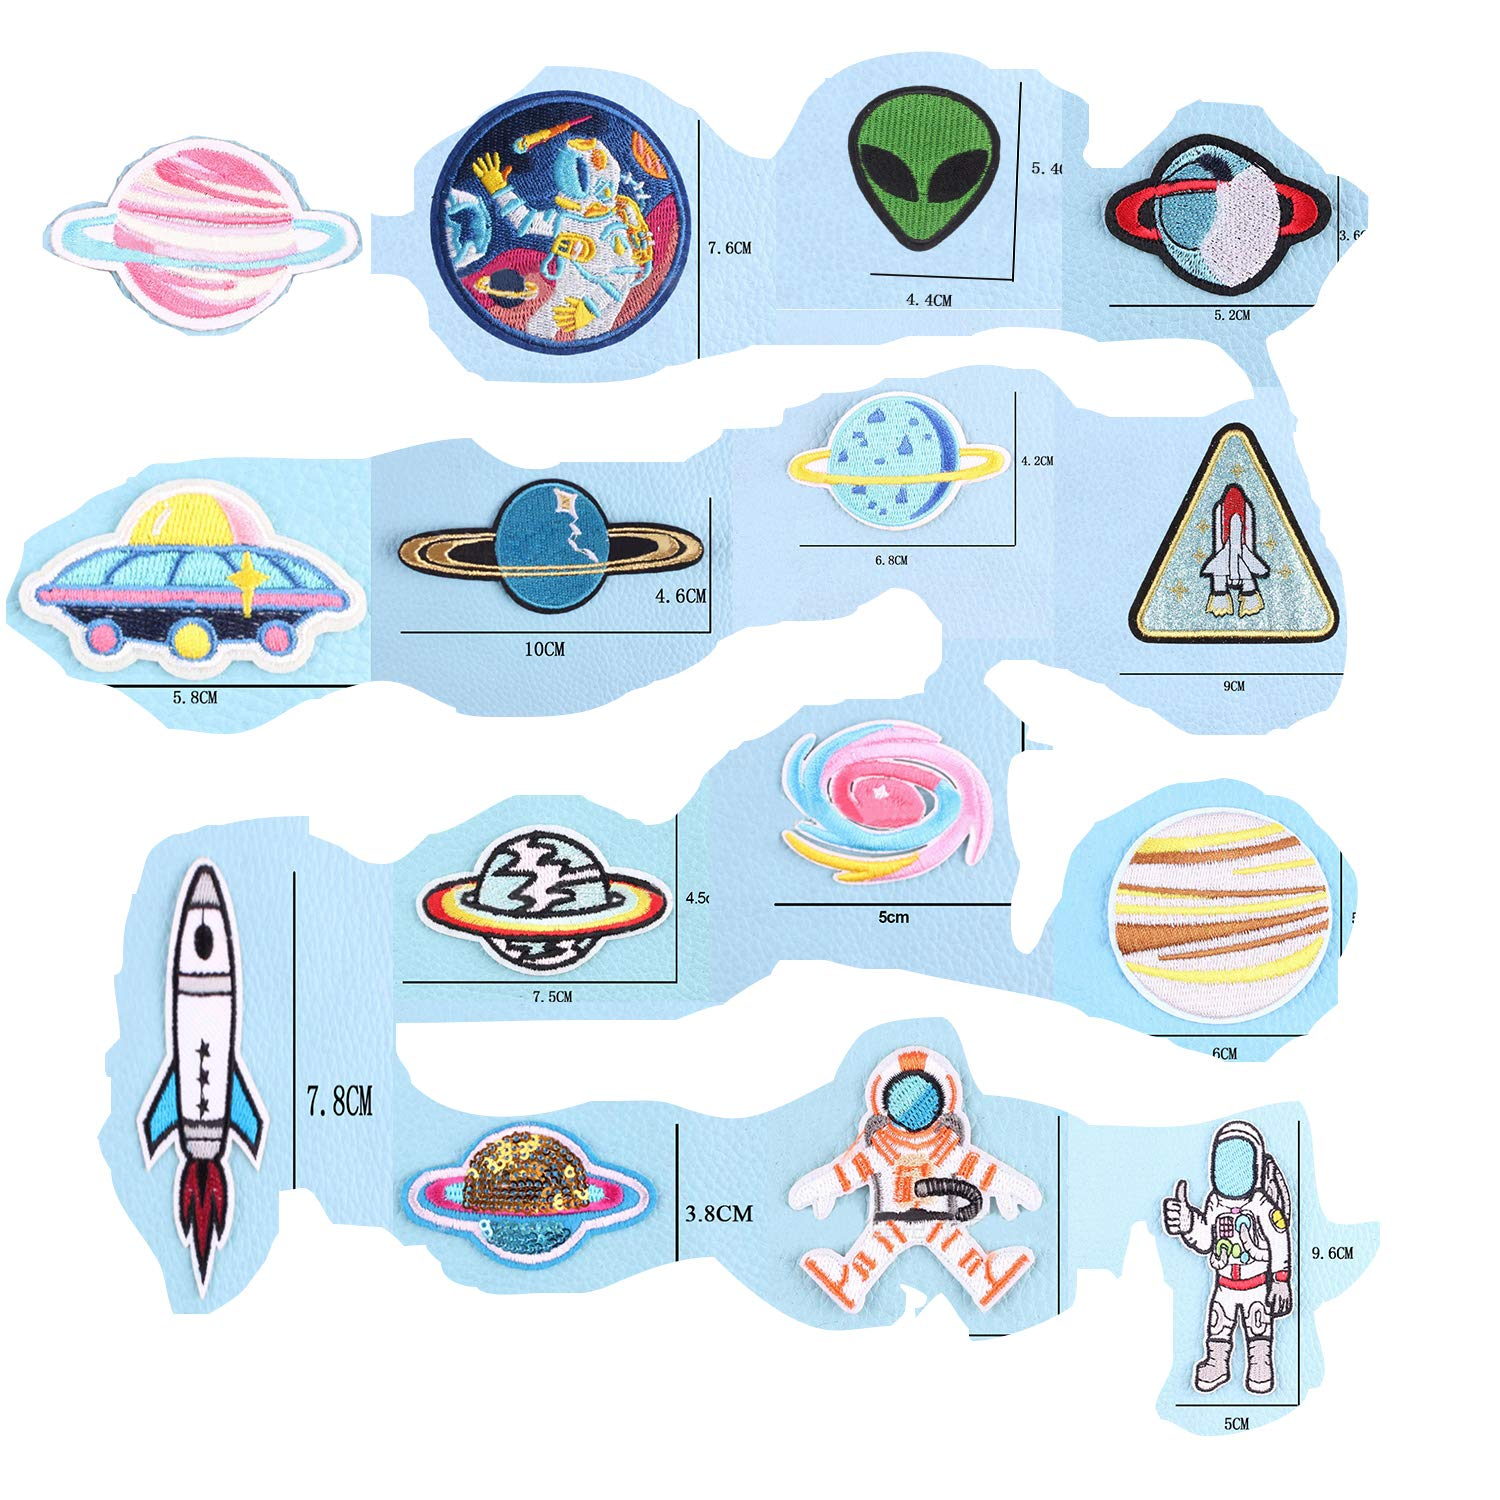 20pieces Iron on Patches Space Planets Patch Solar System Colorful Patches Appliques Stickers for Clothing, Backpack, Caps, Repair The Hole Stick Iron on Decorative by VAVIS TOVEY